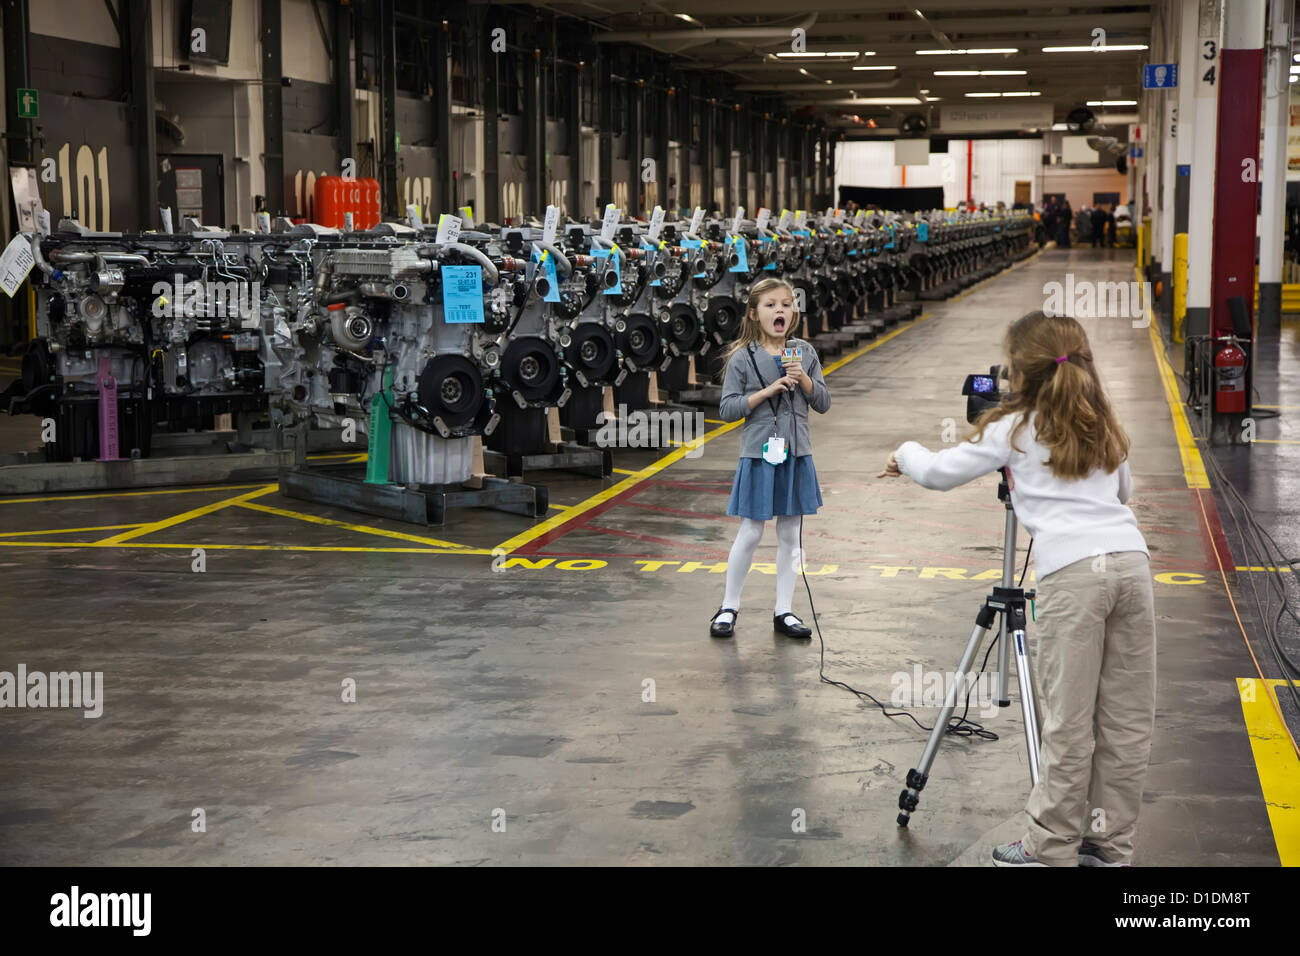 Seven-year-old girls report for Kid Witness News during a visit by President Barack Obama to a Detroit Diesel factory. - Stock Image